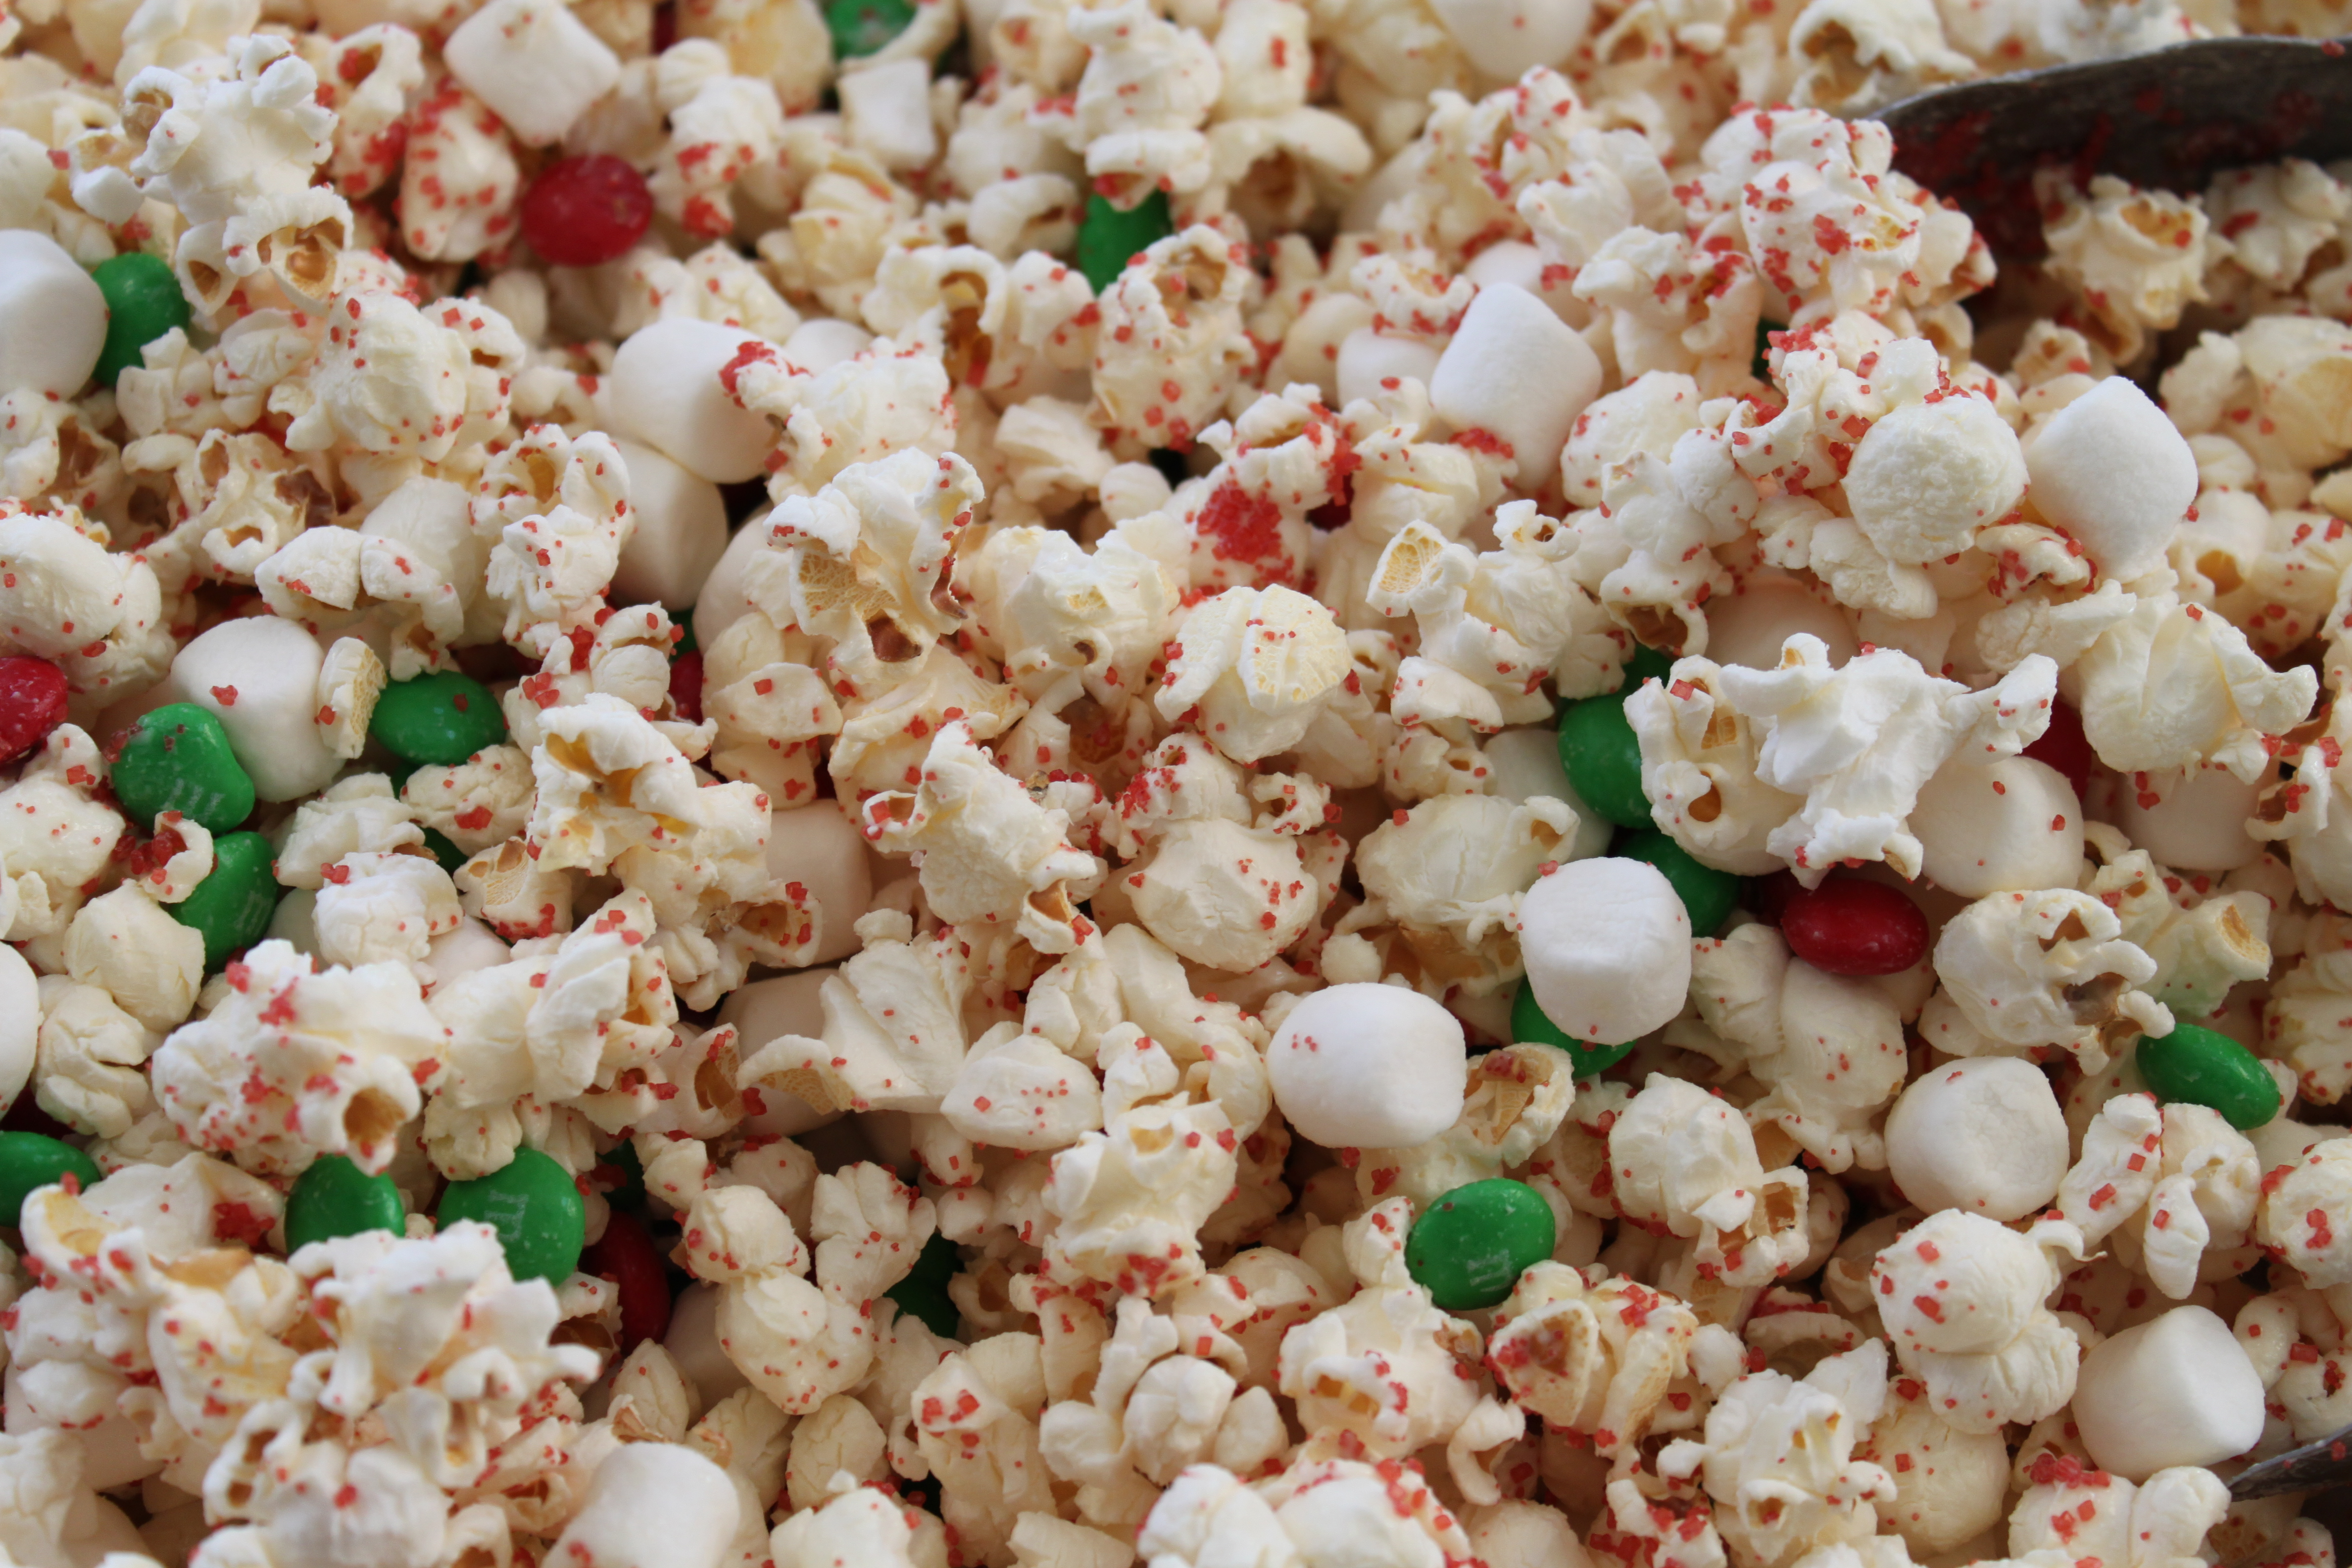 21 Popcorn Recipes for Party Time Ellie Martin Cliffe October 17, Whether you need an easy make-and-take treat or something to munch on while you watch Netflix, our gourmet popcorn recipes will have you snacking in no time.